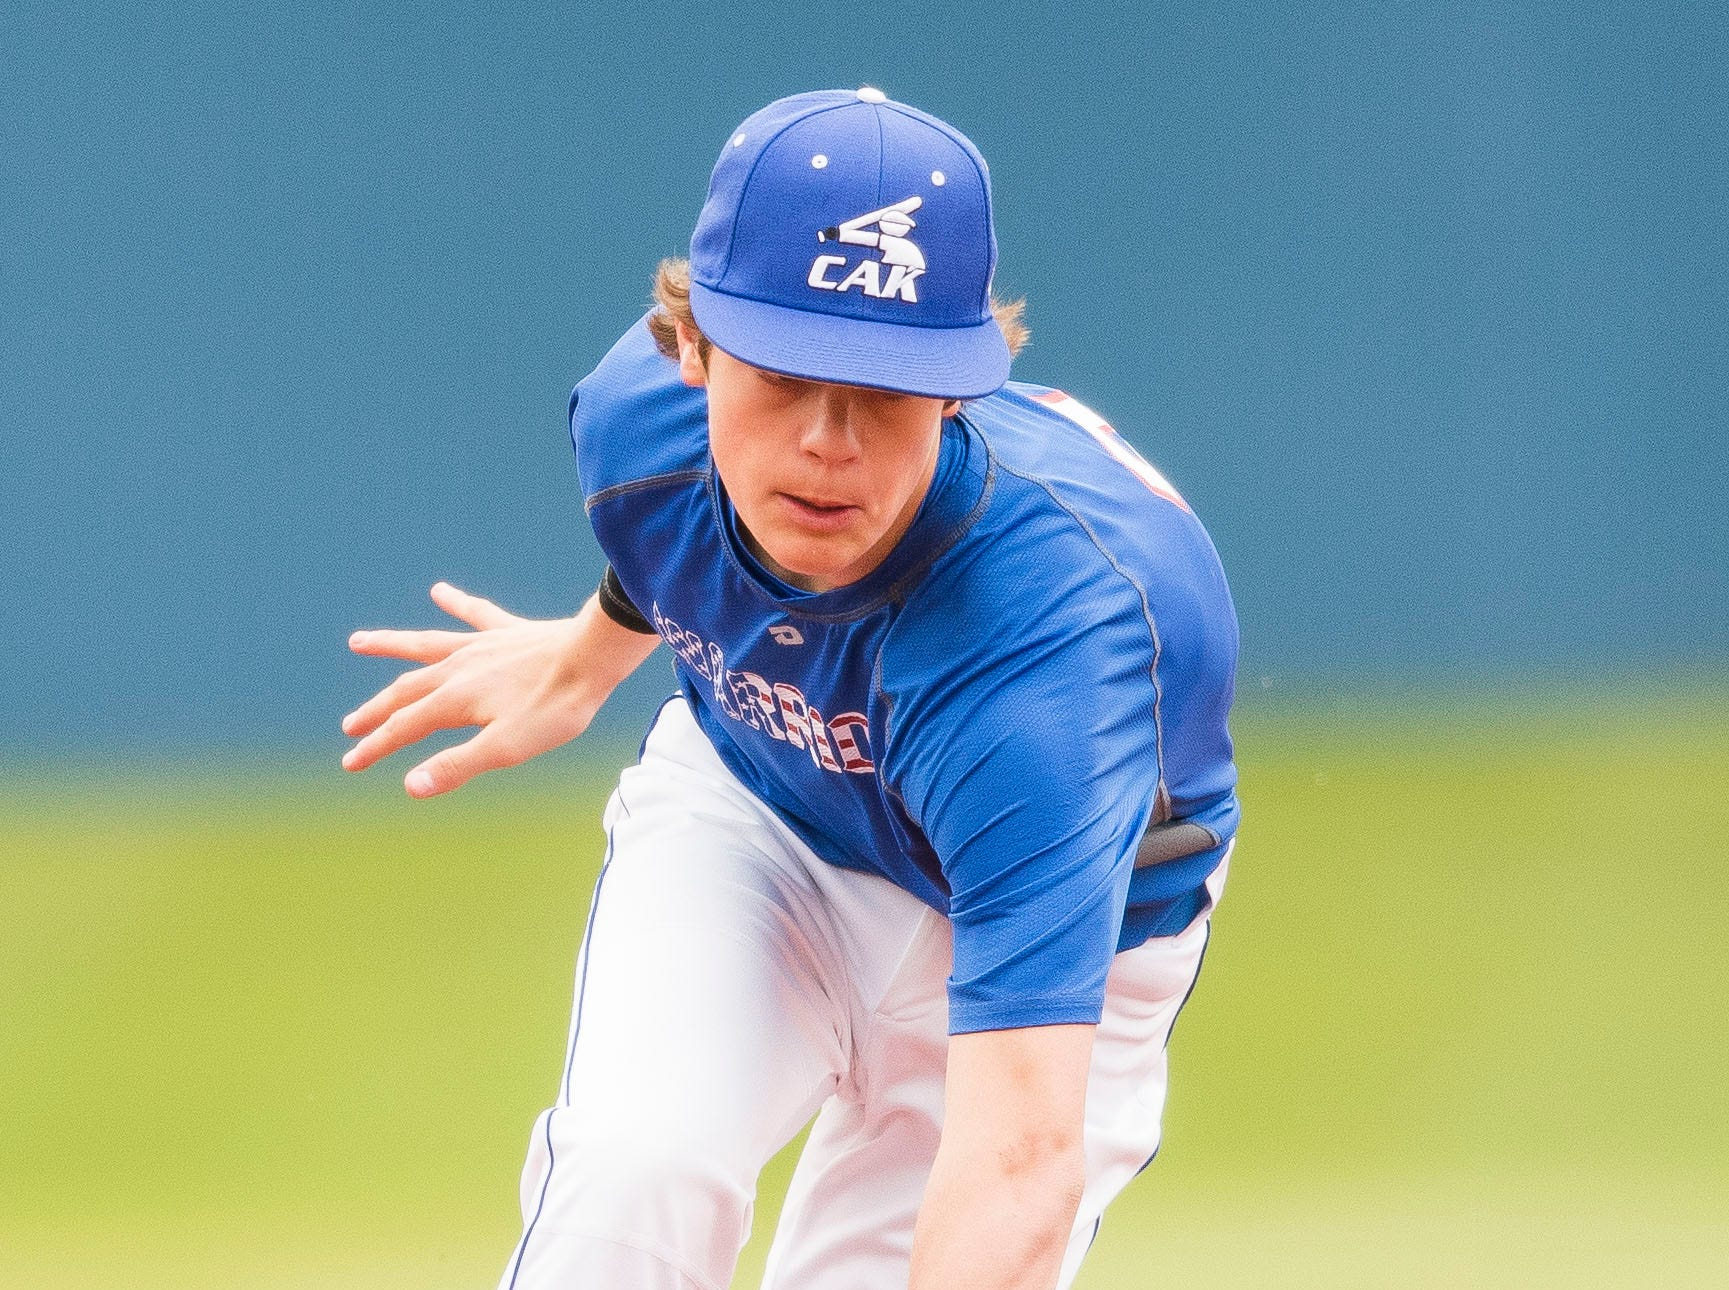 CAK's Ryan Degges fields the ball during a baseball game between CAK and Bartlett held at CAK in Knoxville on Friday, April 29, 2019.